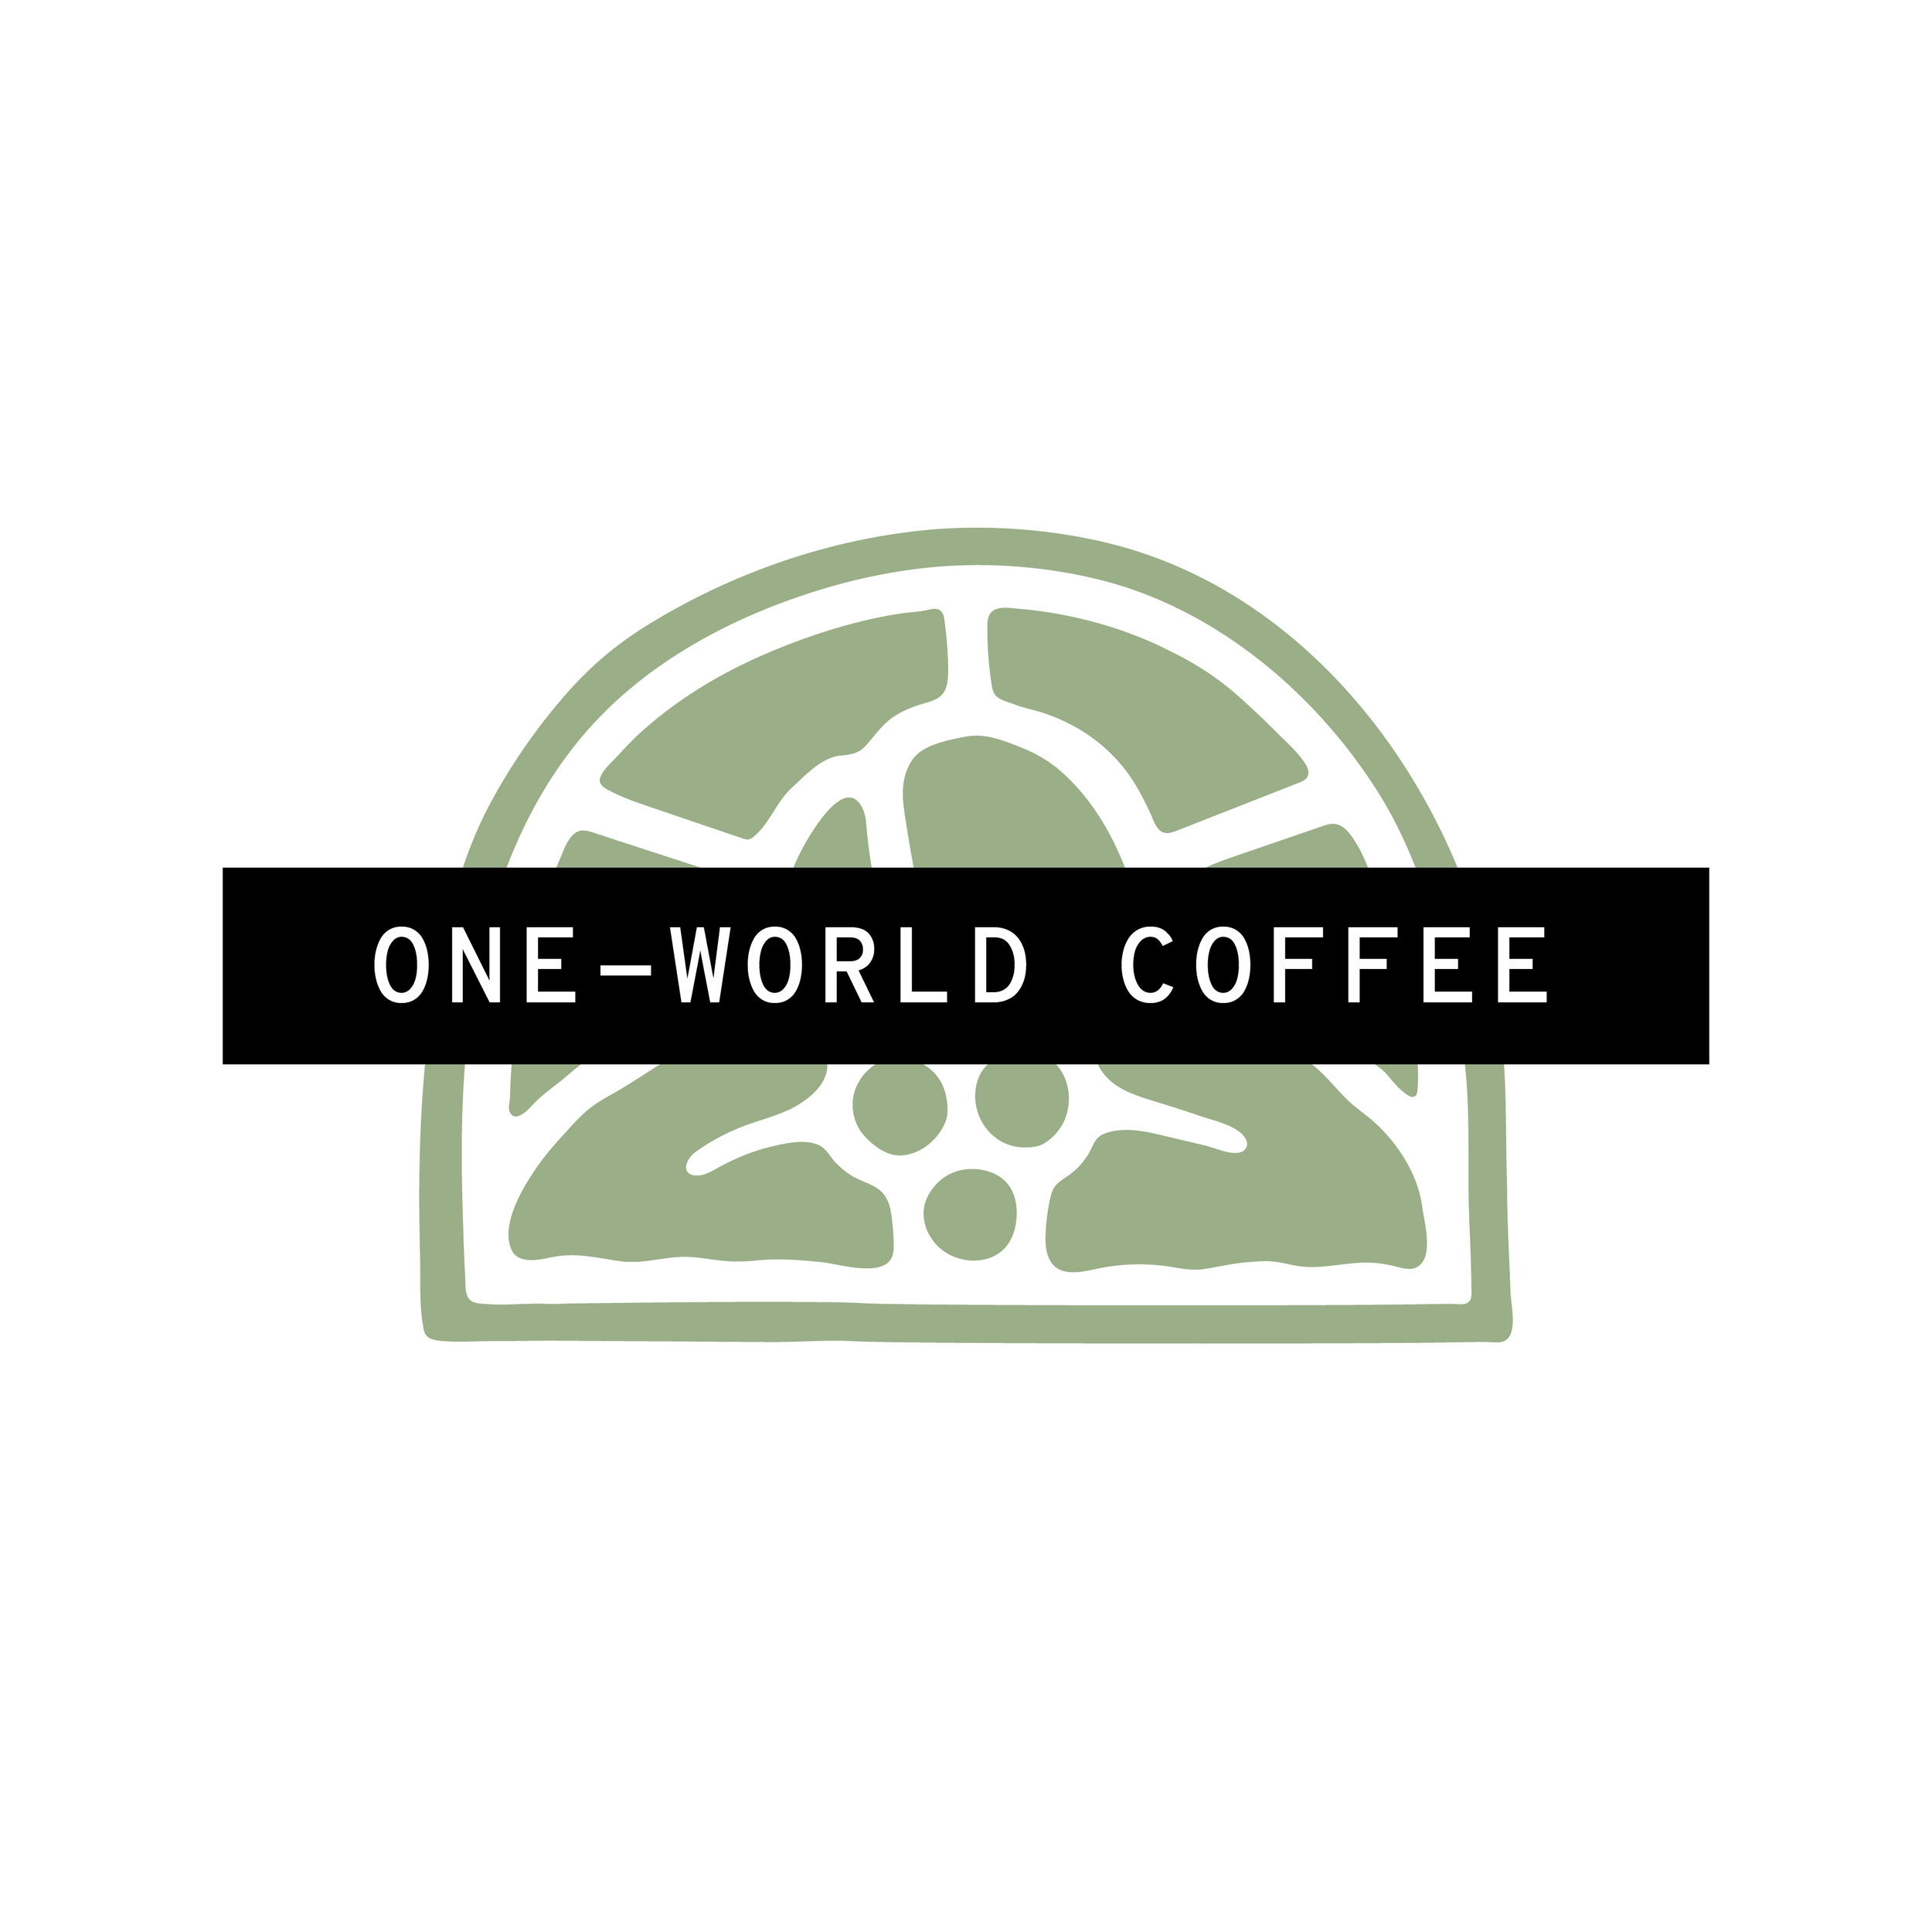 buda_homepage_thumbnail_One-World Coffee.jpg